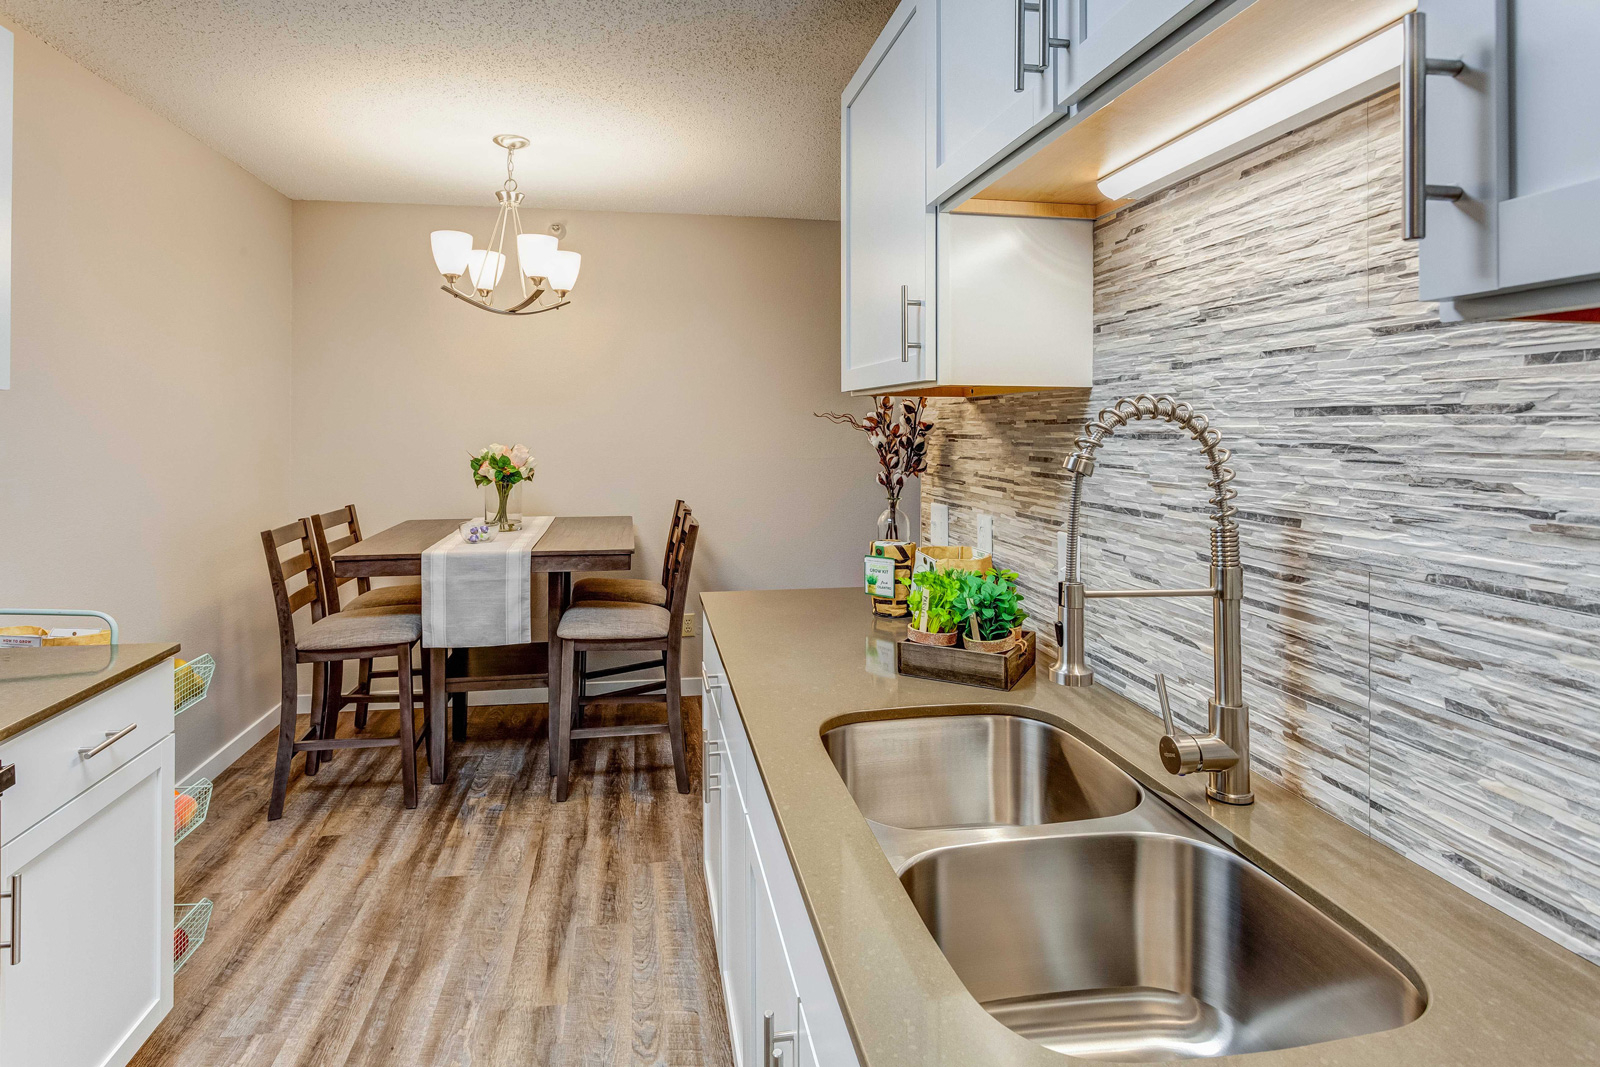 Carriage Oaks kitchen sink with updated backsplash and dining room view.